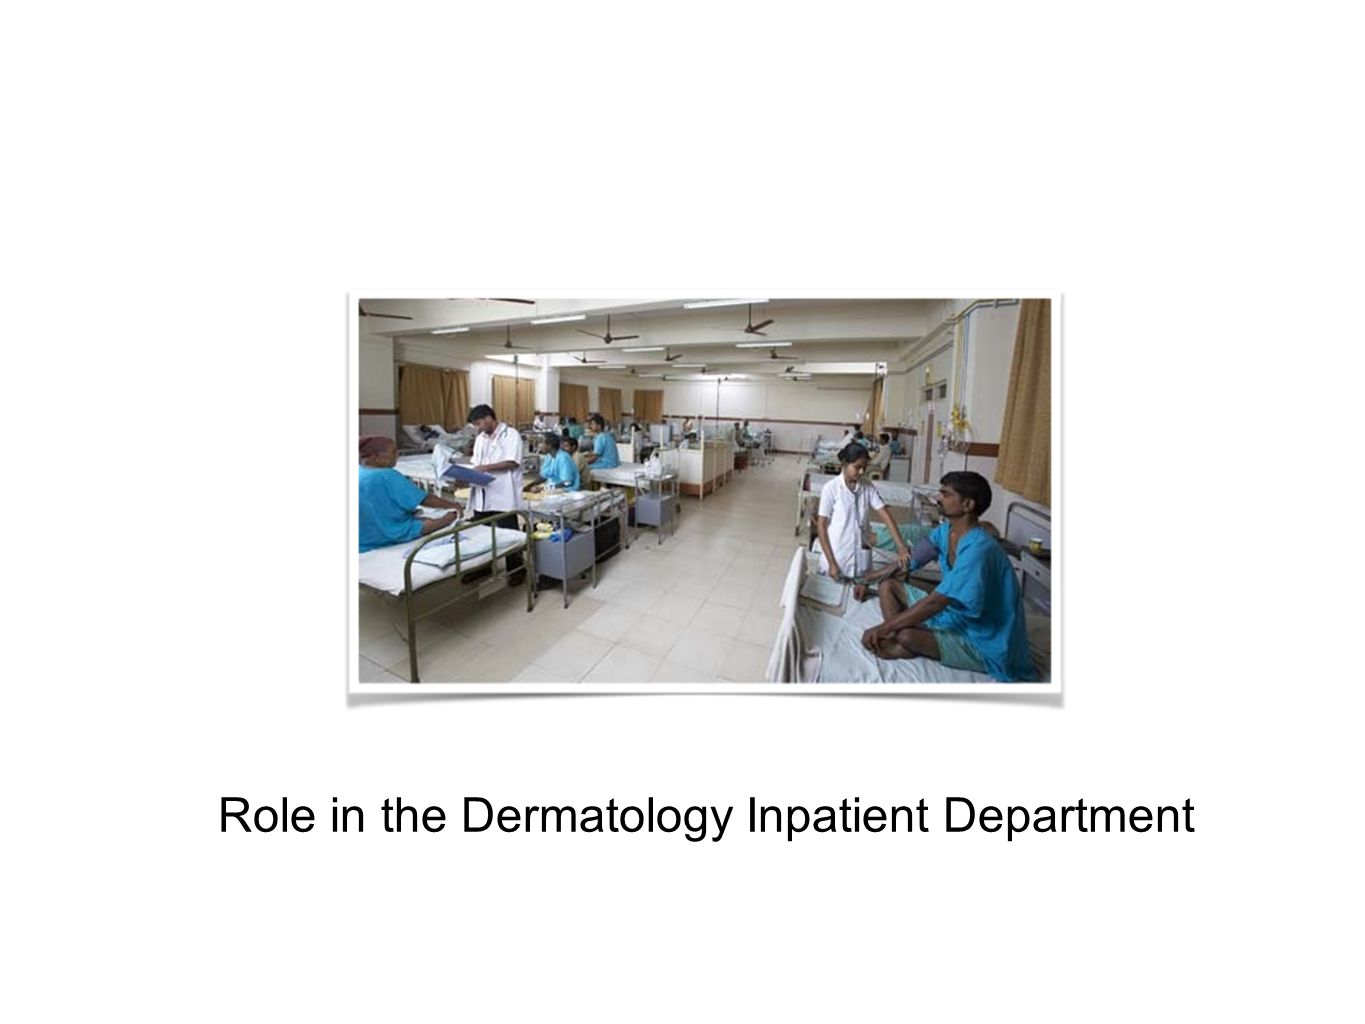 Role in the Dermatology Inpatient Department